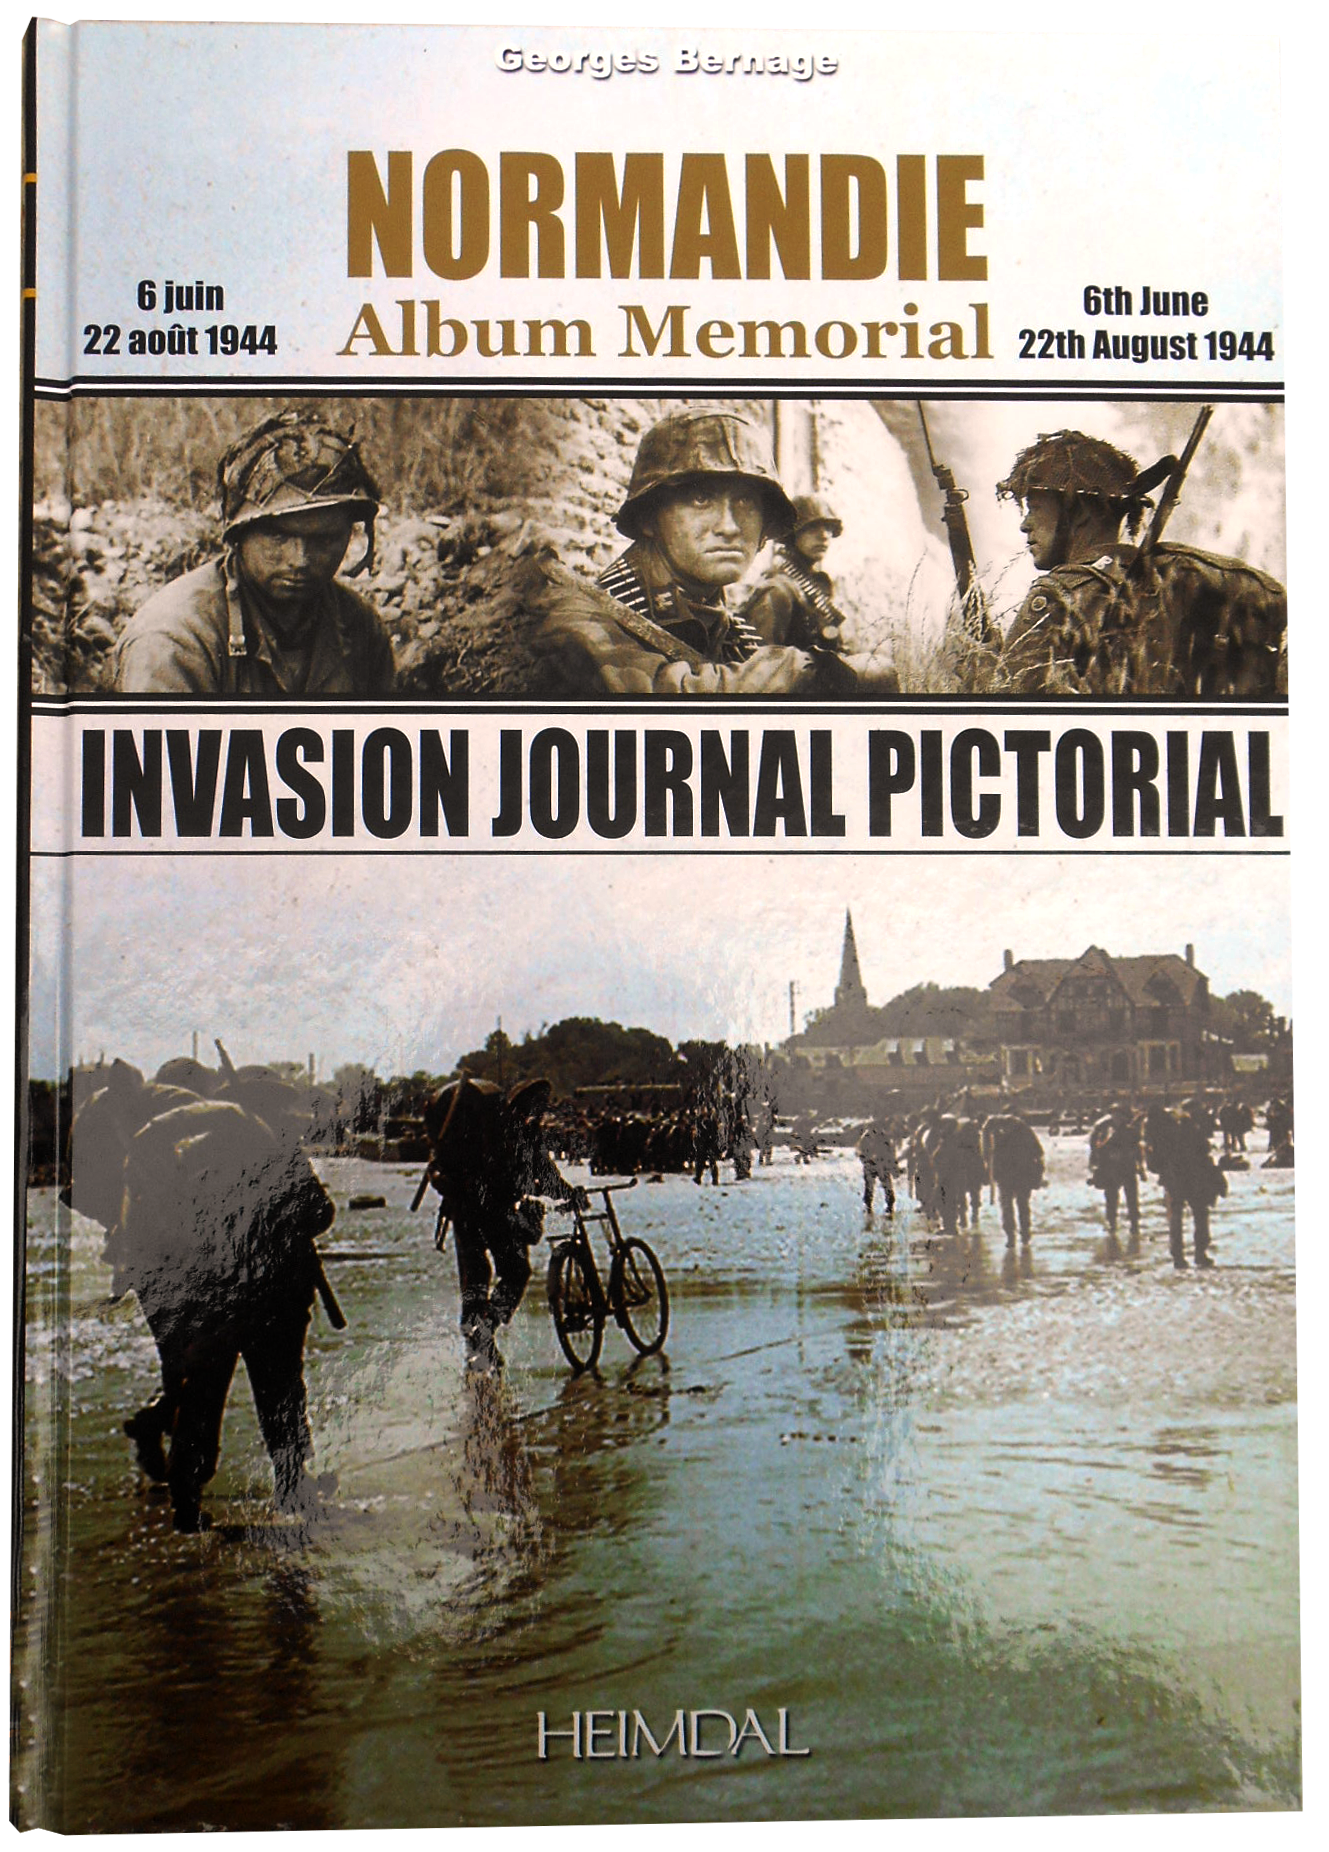 Normandie Album Memorial - Invasion Journal Pictorial par Georges Bernage aidé par de nombreux auteurs (Editions Heimdal)